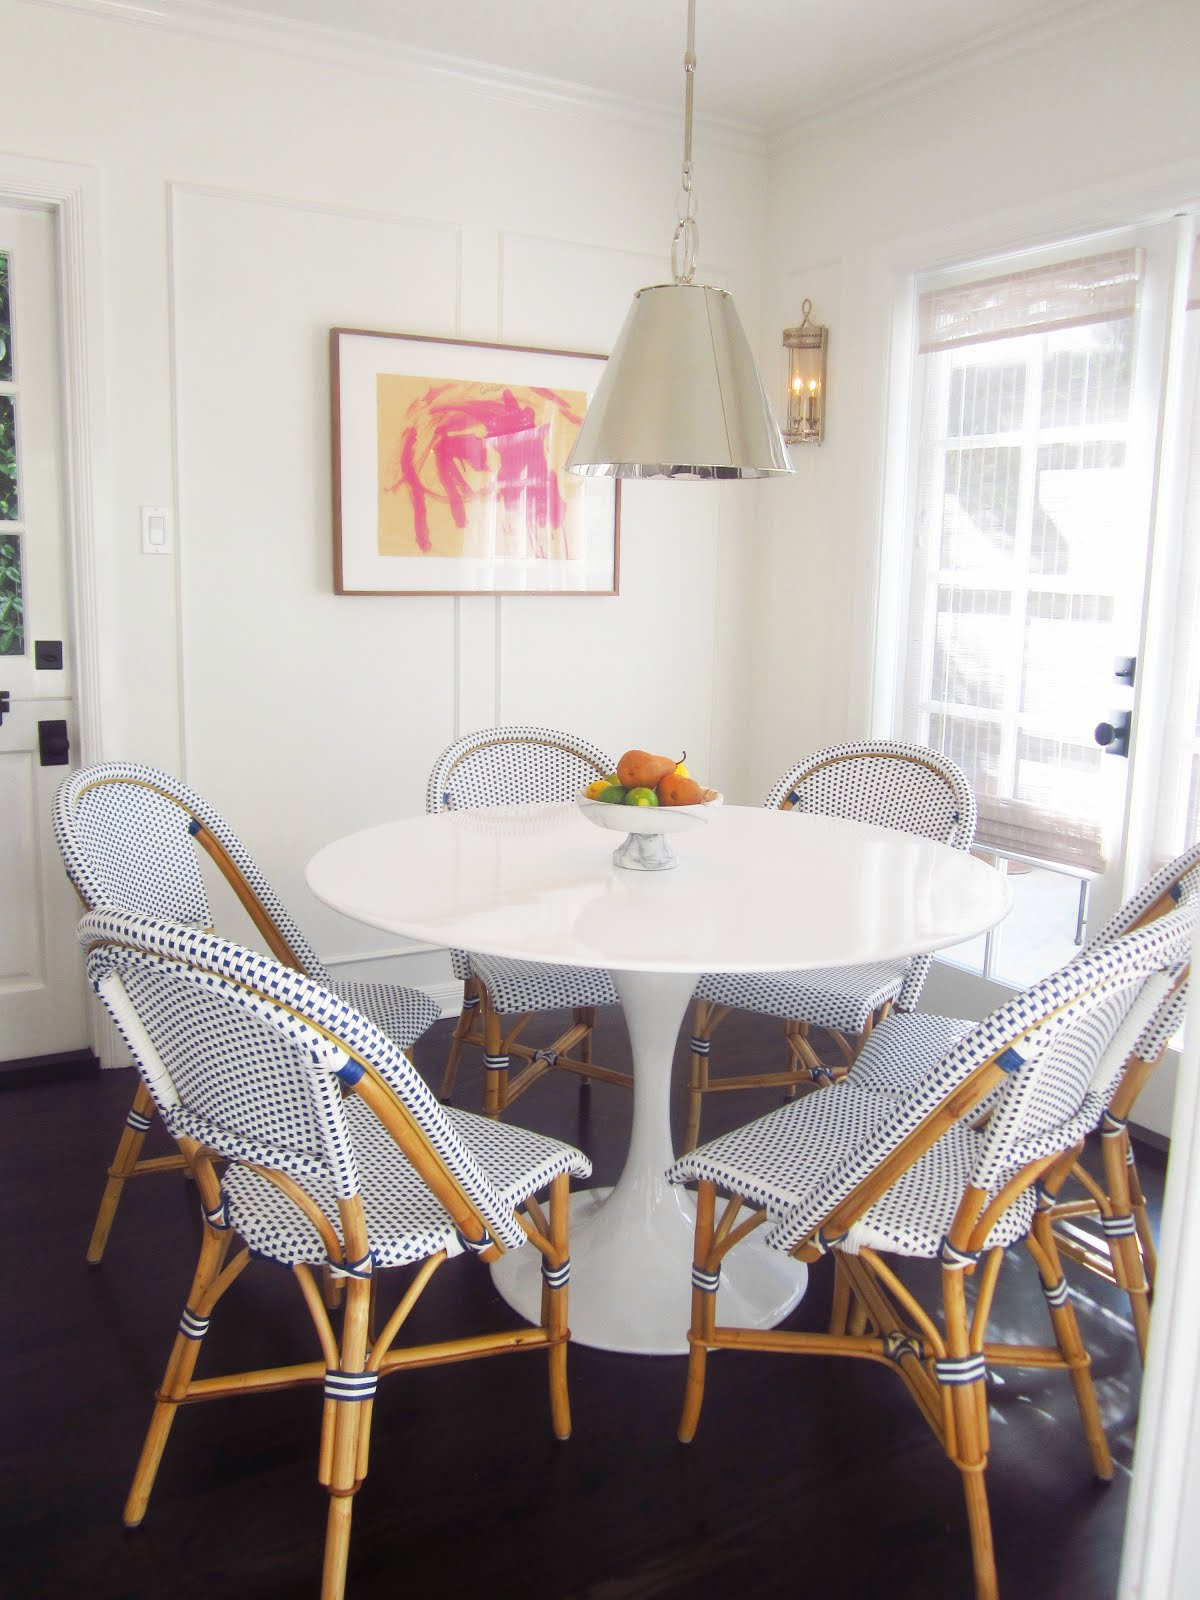 29 White Kitchen With Beautiful Table